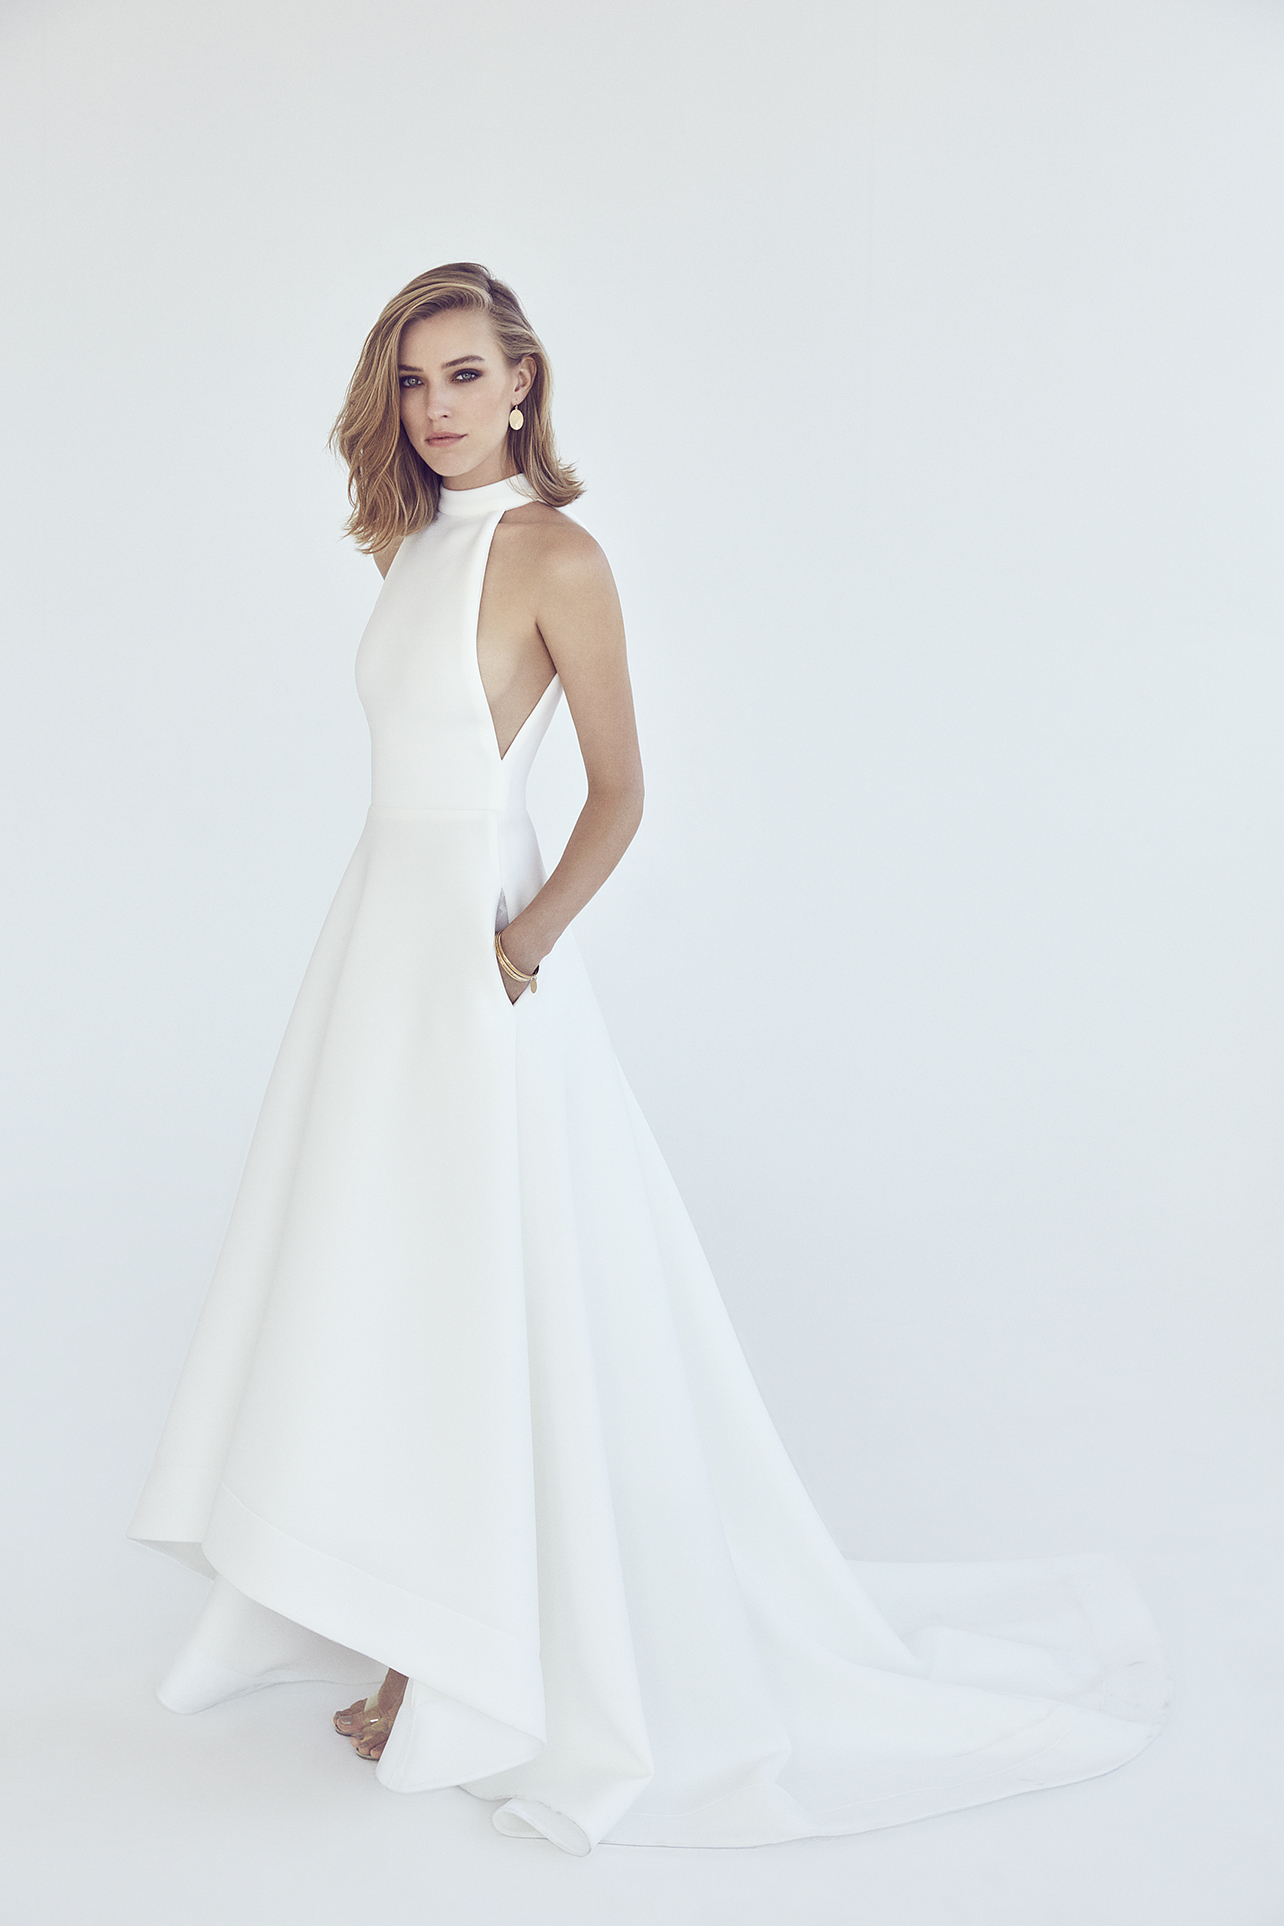 Futuristic Gown by Suzanne Harward   LOVE FIND CO.